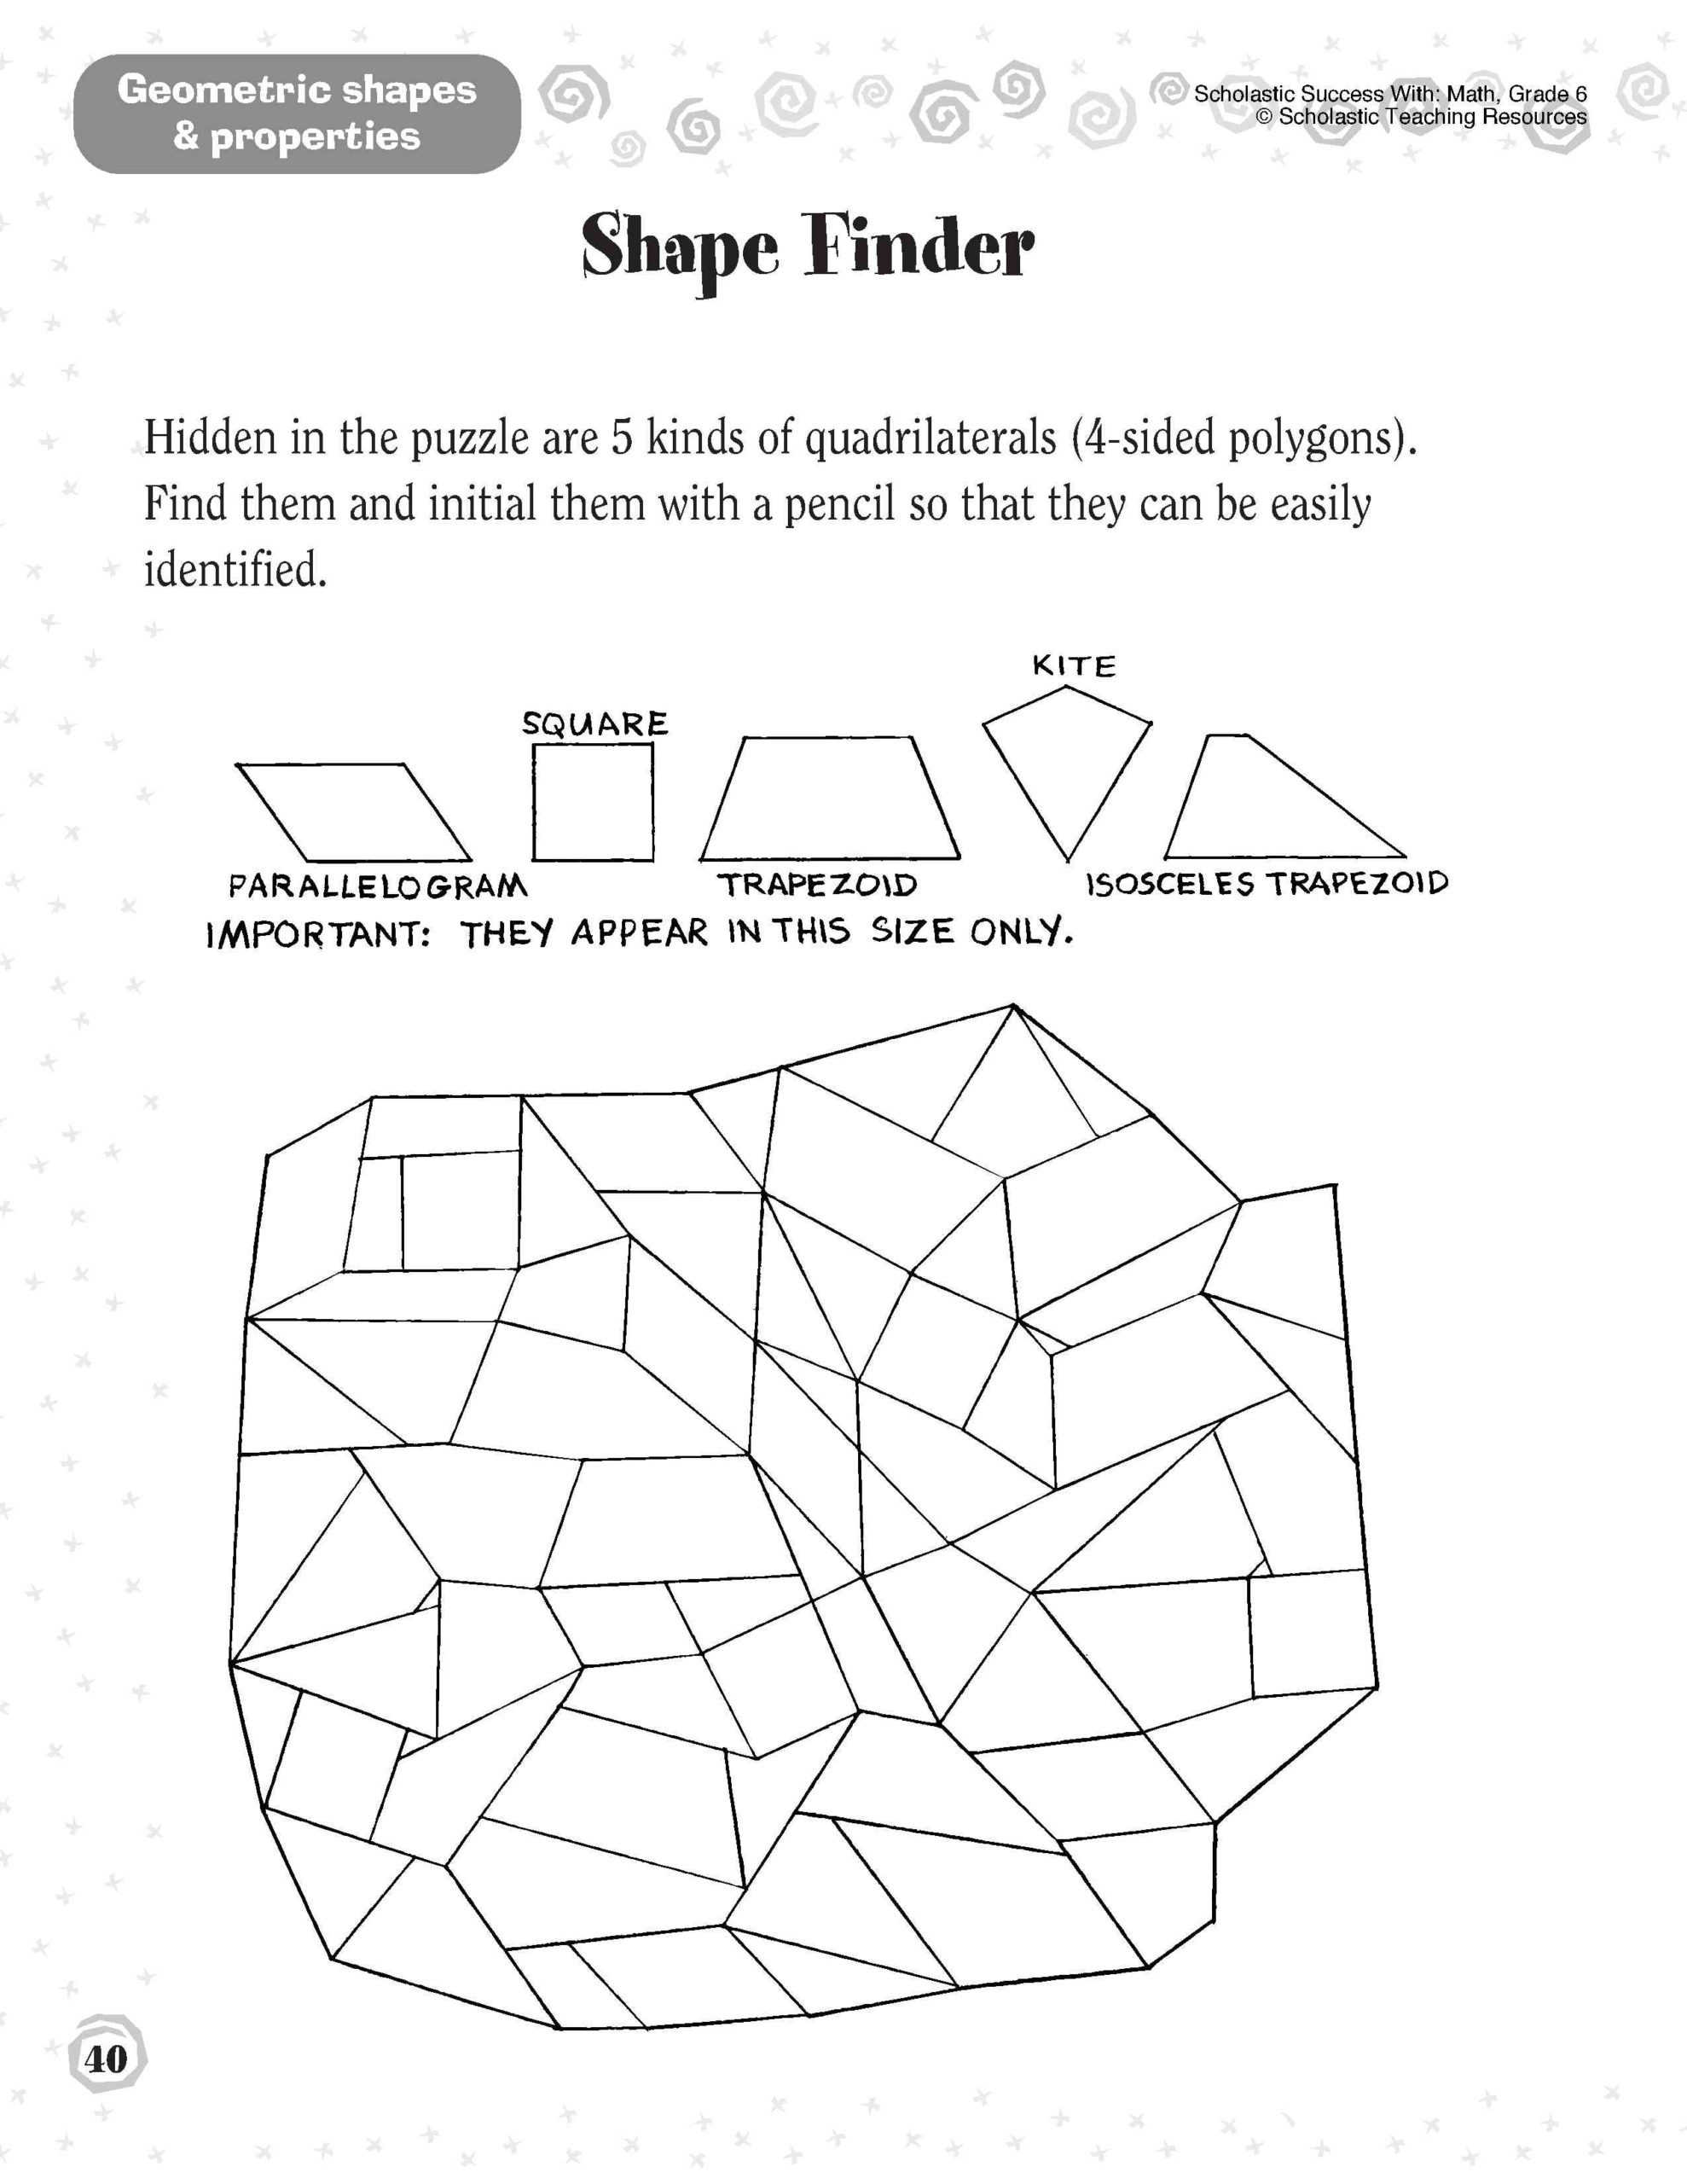 Math Mountain Worksheets 2nd Grade 1st Grade Shapes Worksheet Printable Worksheets and